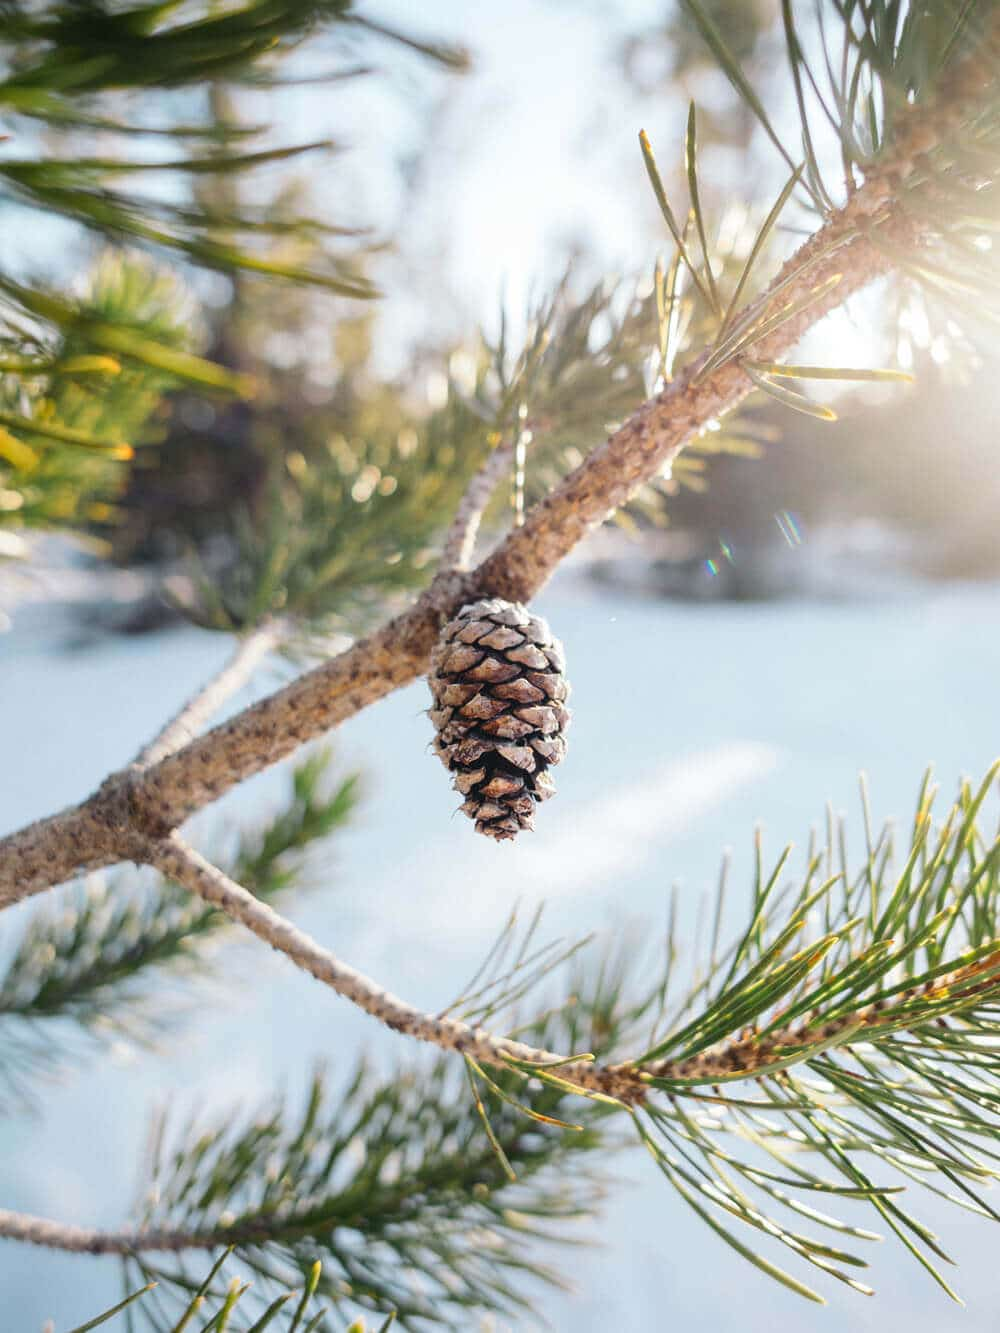 Pinecone on a sunny winter day